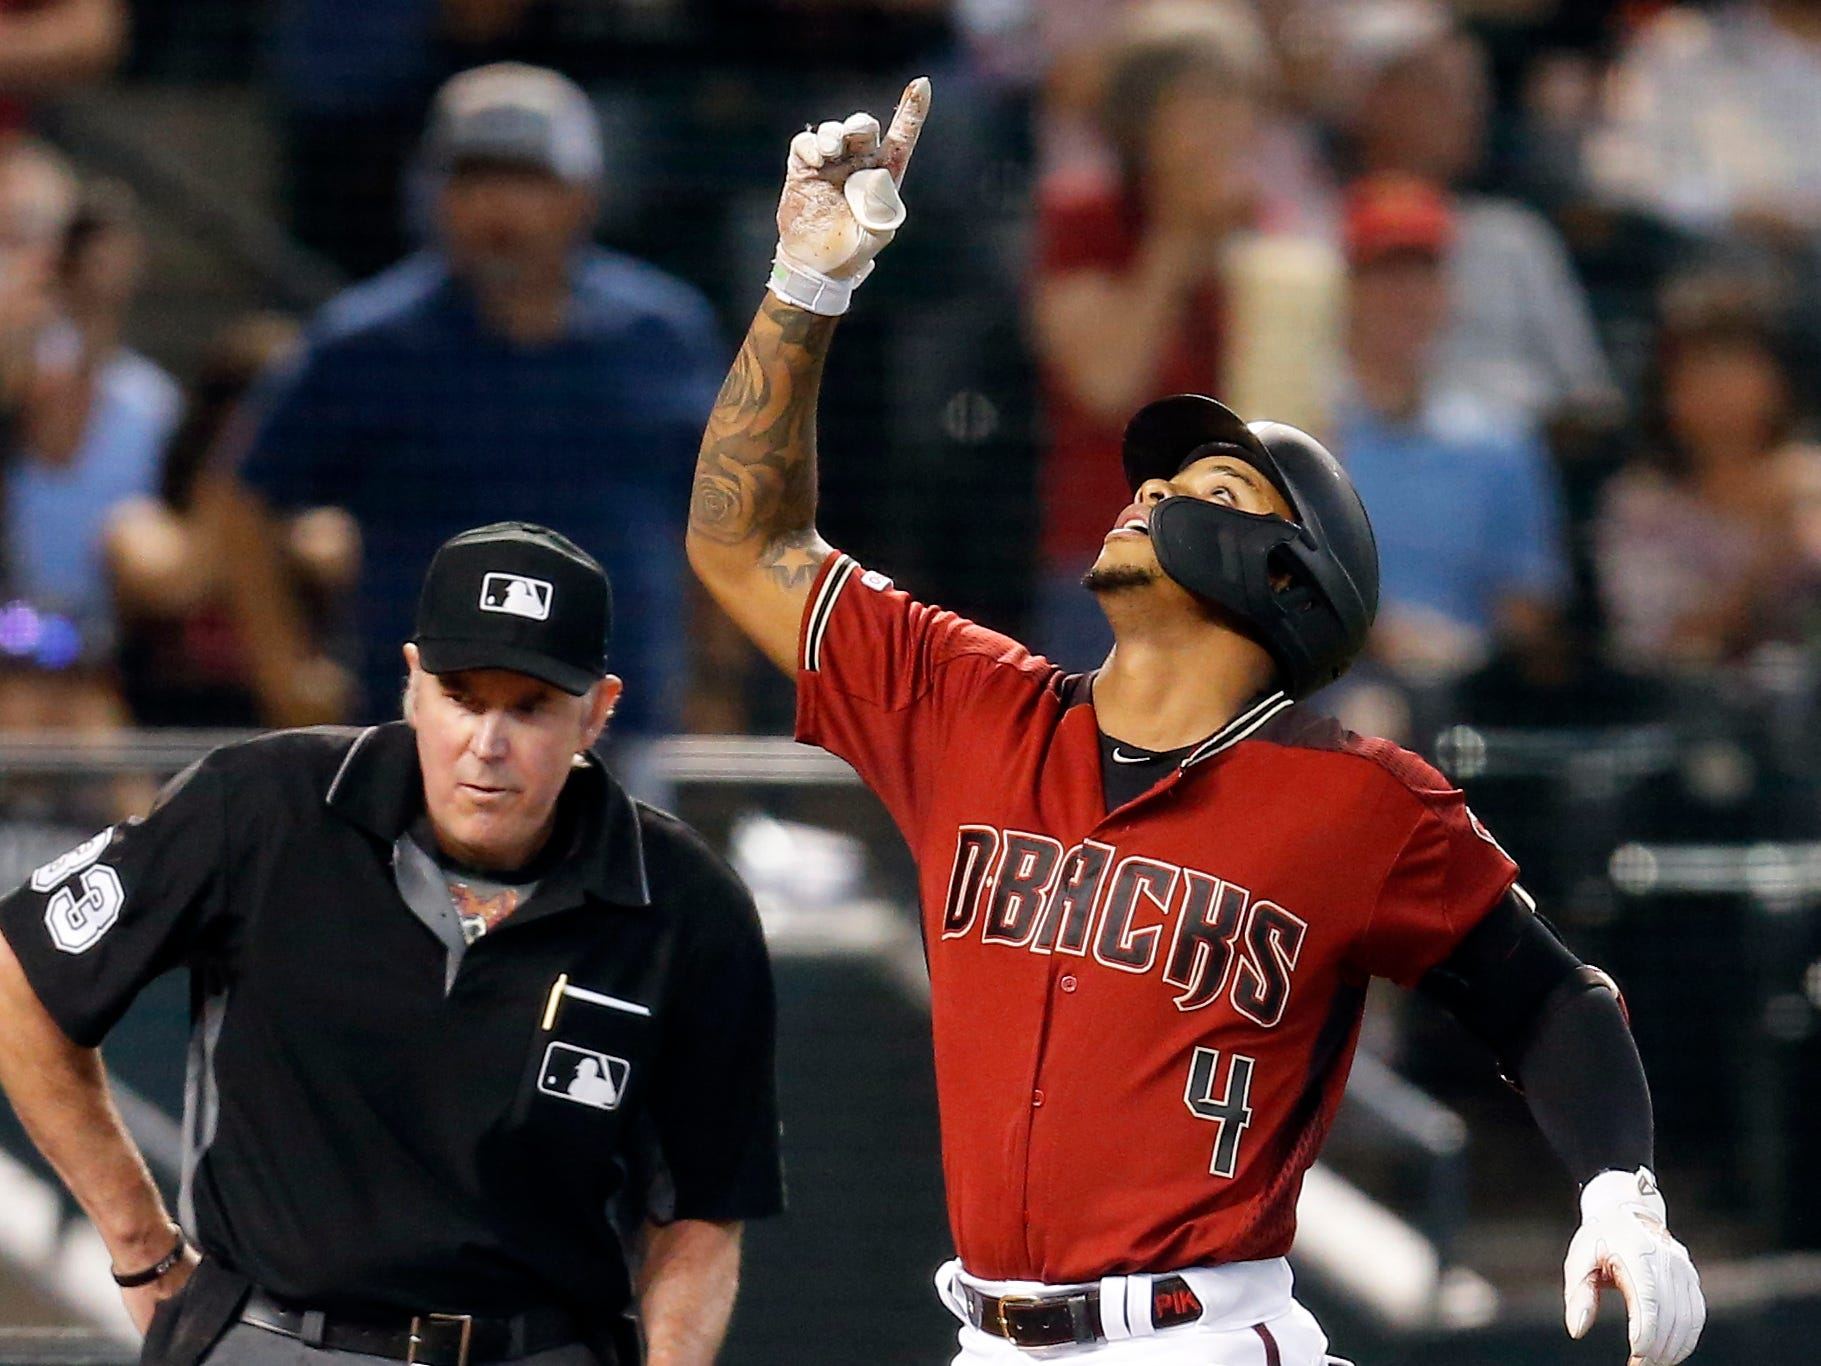 Arizona Diamondbacks' Ketel Marte (4) celebrates after hitting a two-run home run against the San Diego Padres in the third inning during a baseball game, Sunday, April 14, 2019, in Phoenix. (AP Photo/Rick Scuteri)